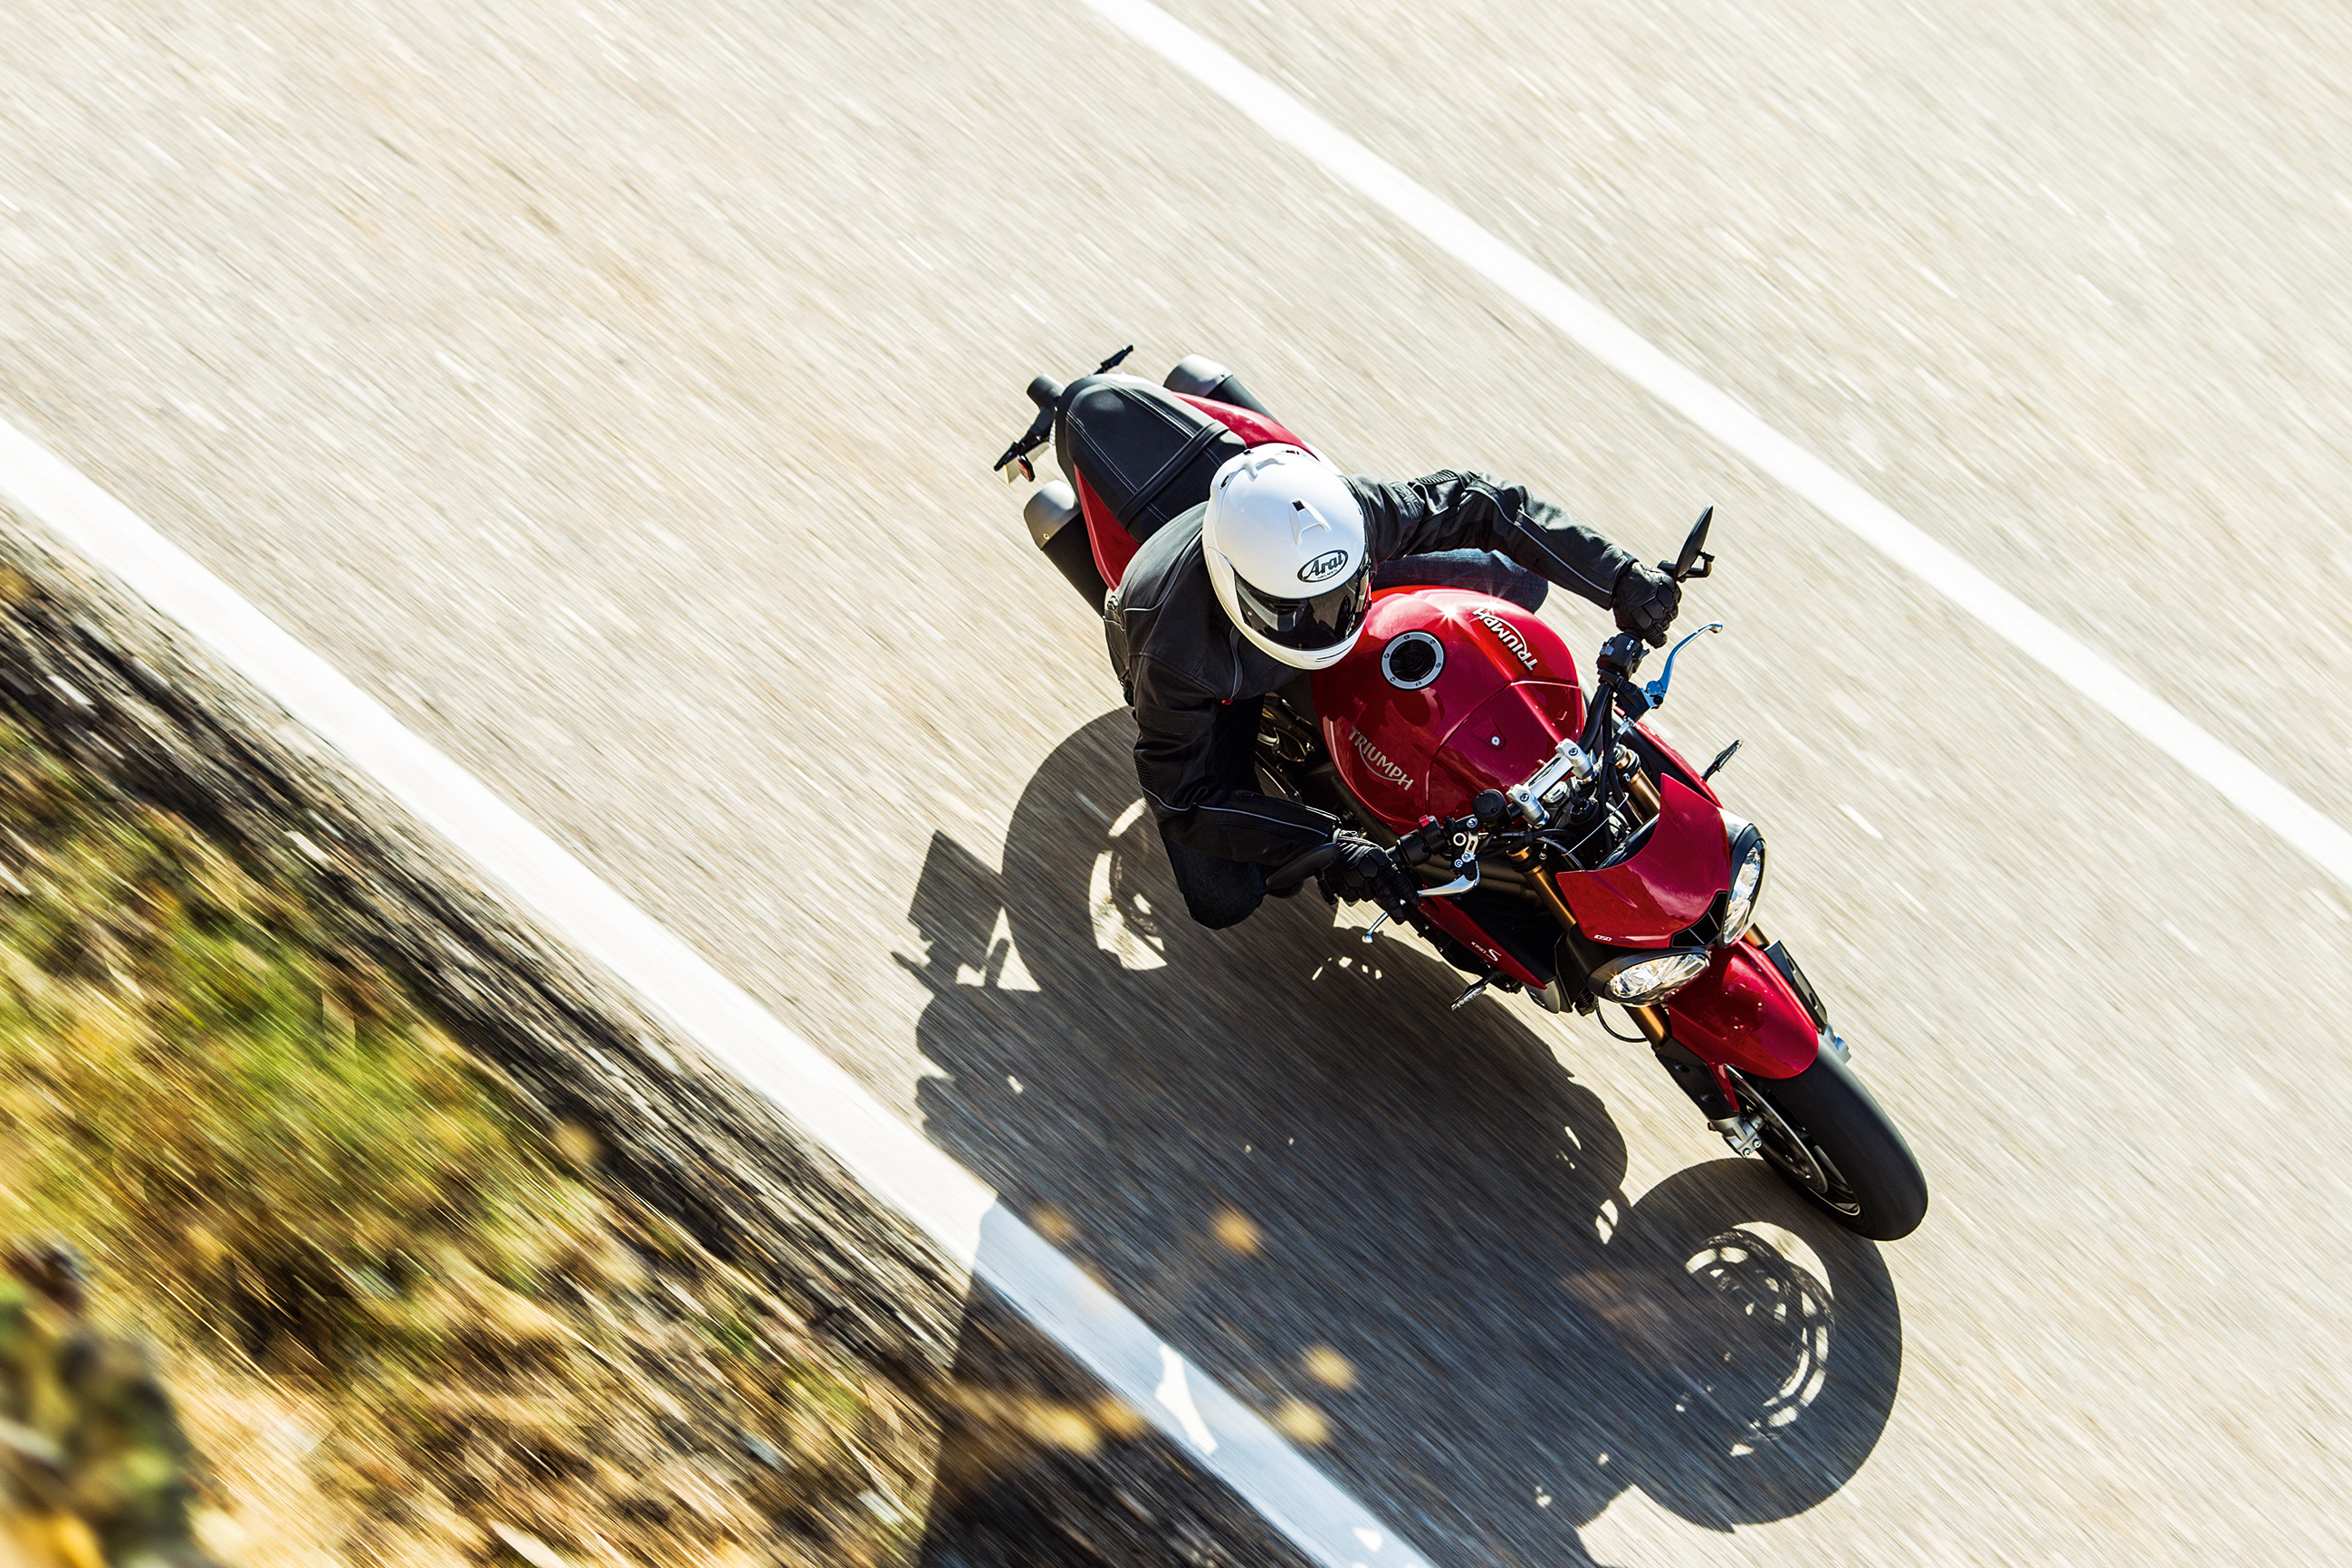 Here's the new Triumph Speed Triple in action